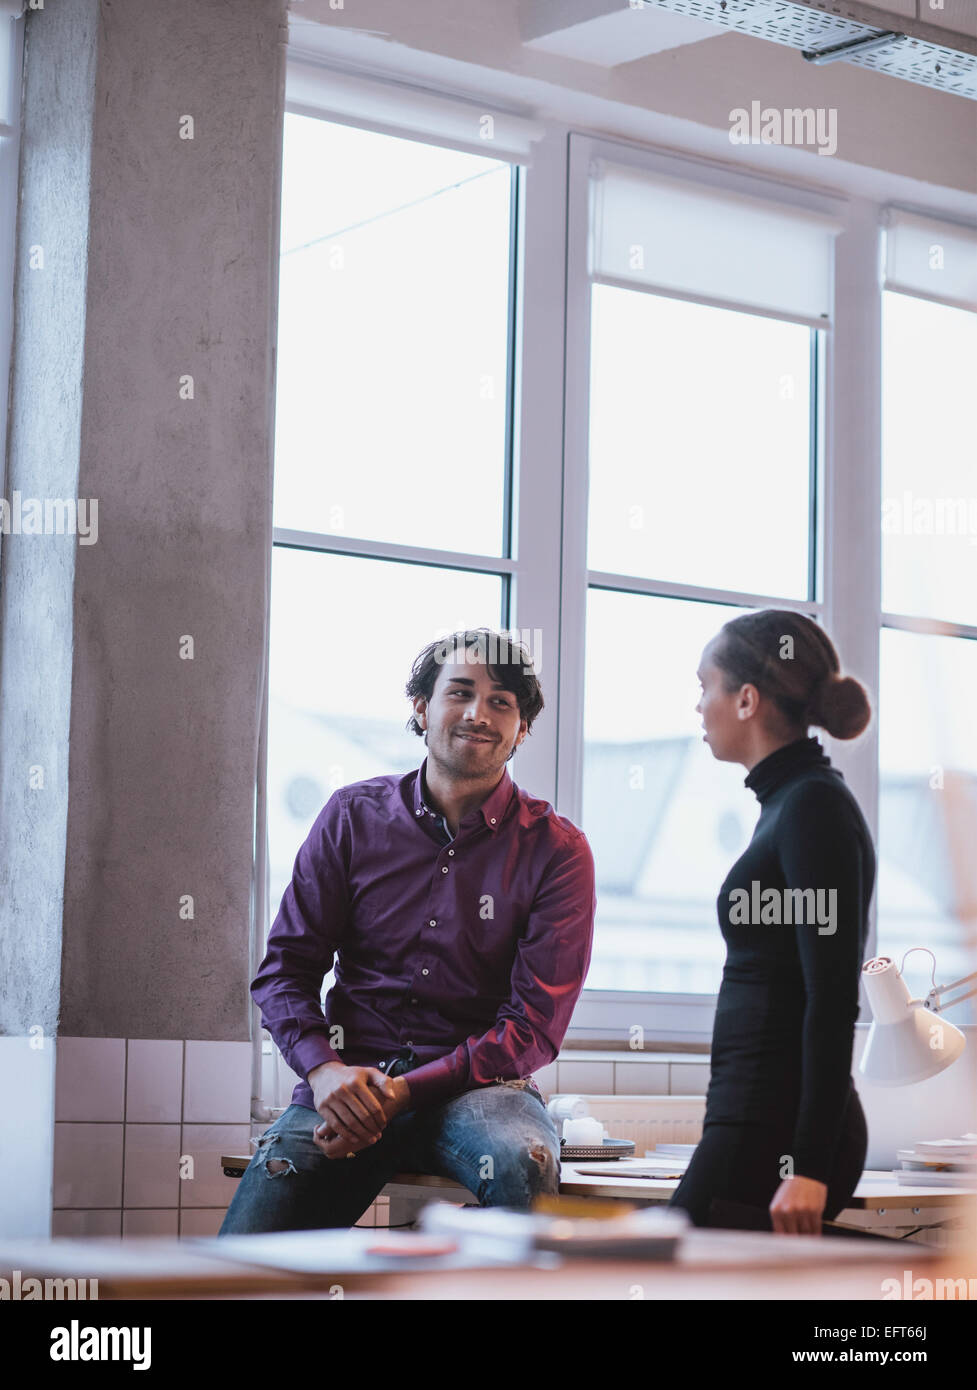 Indoor shot of young people talking in office. Executives discussing work. - Stock Image